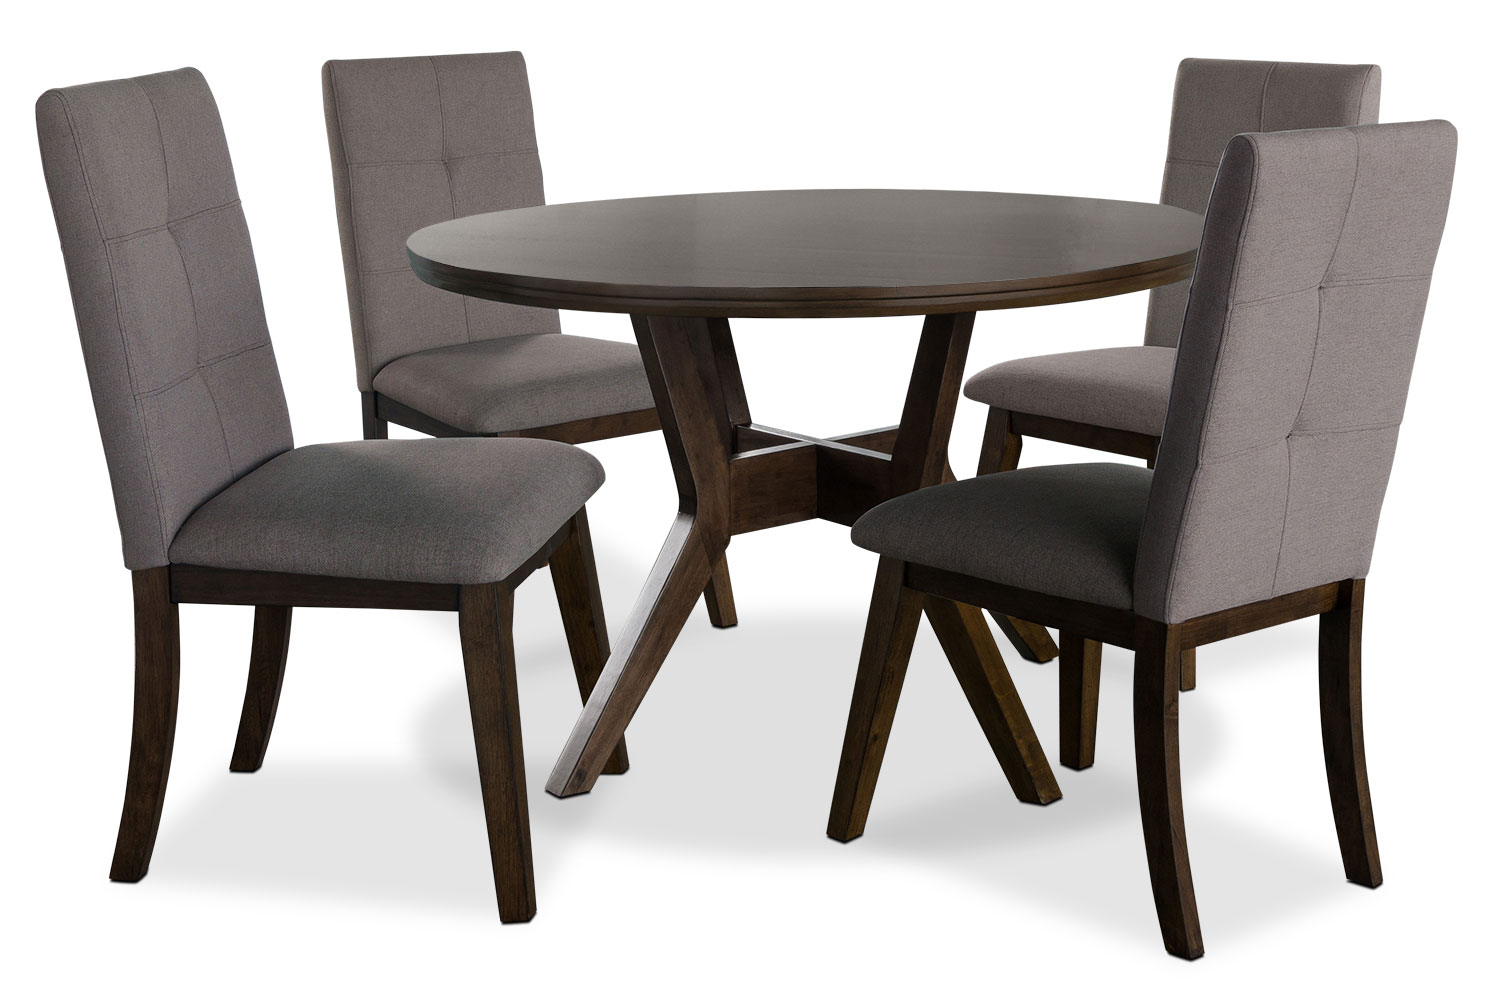 Dining Room Furniture - Chelsea 5-Piece Round Dining Table Package with Brown Chairs